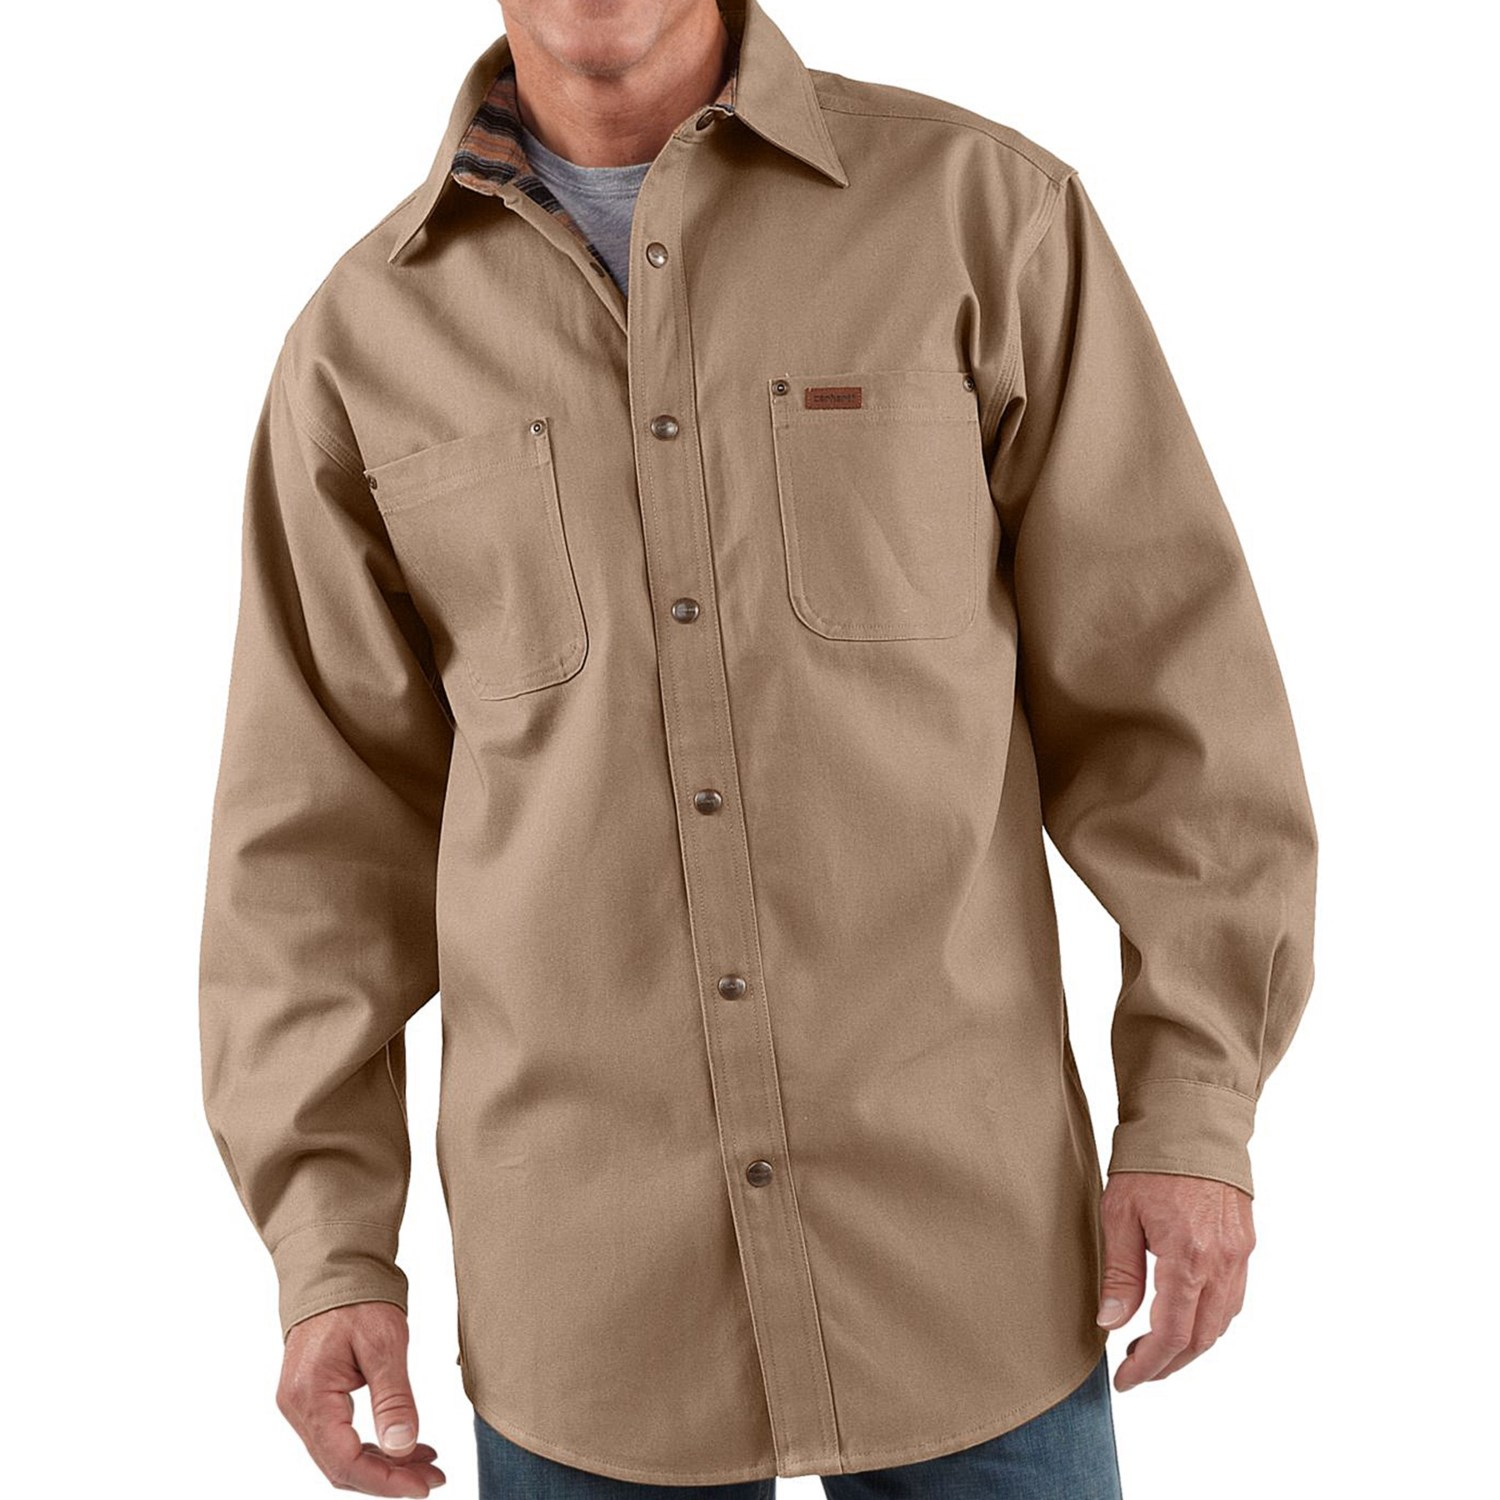 Carhartt Canvas Shirt Jacket Flannel Lined For Tall Men